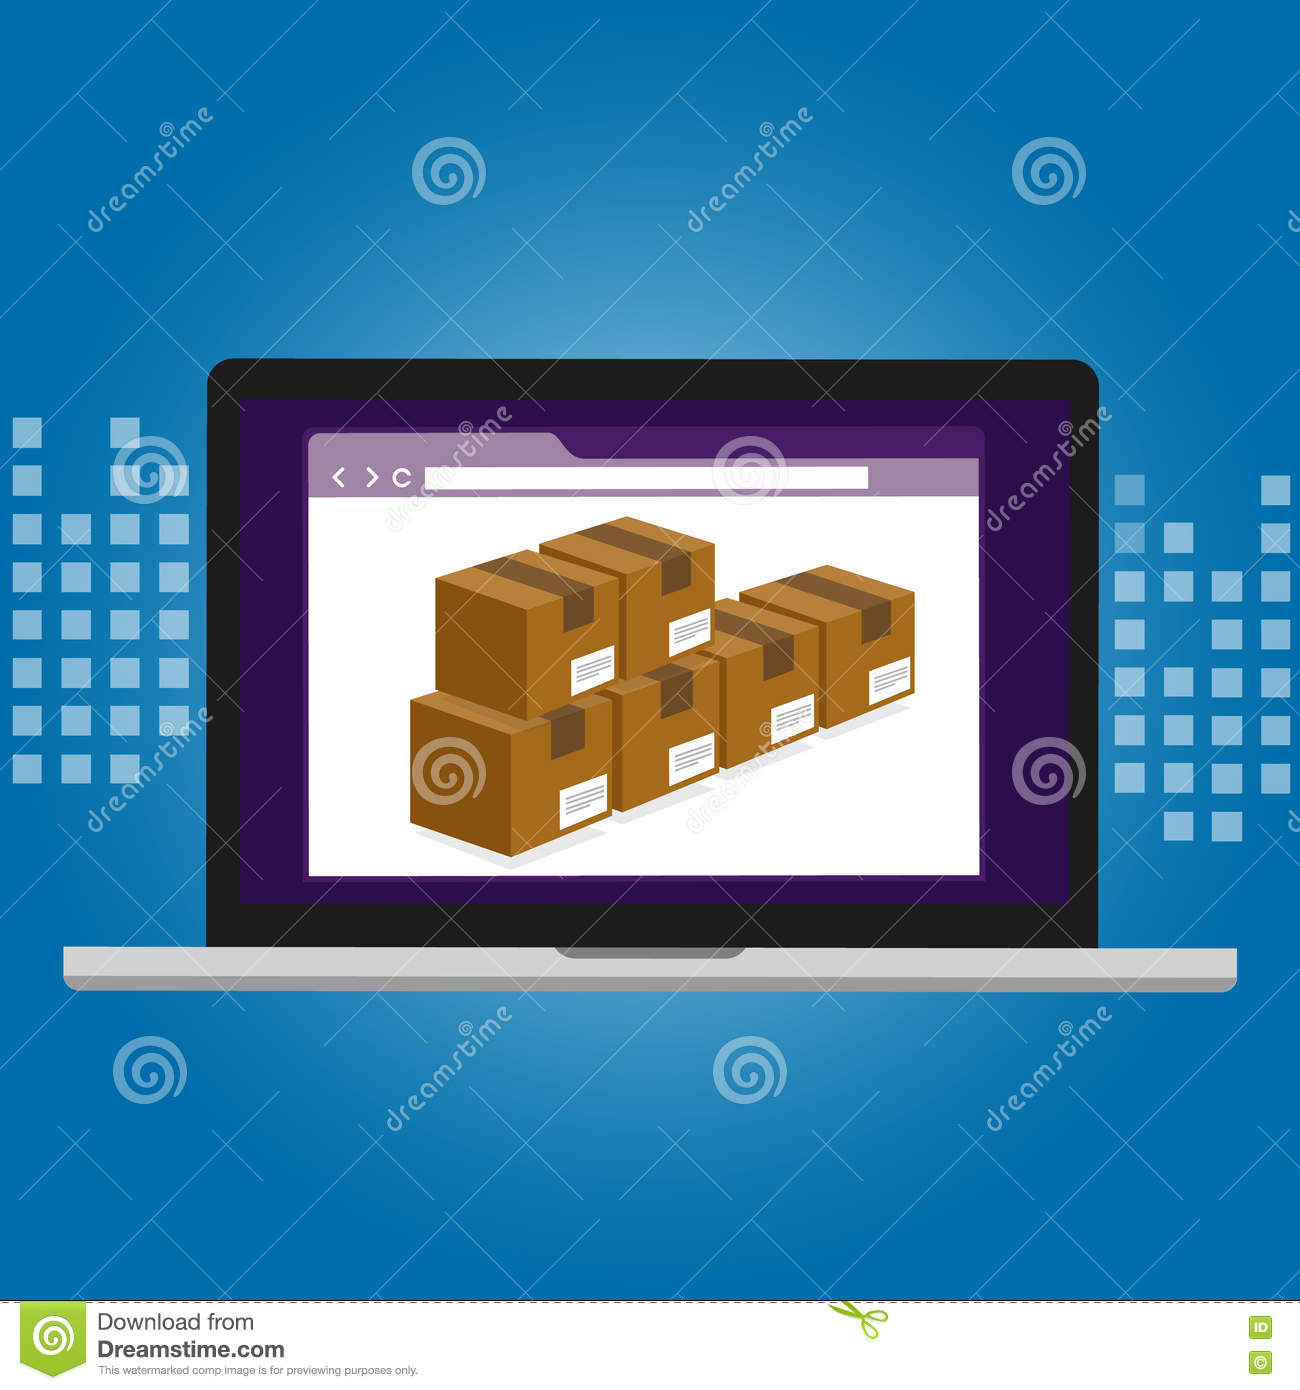 Inventory Management Logistics System Warehouse Technology Box Inside A Computer Diagram Picture Of Software